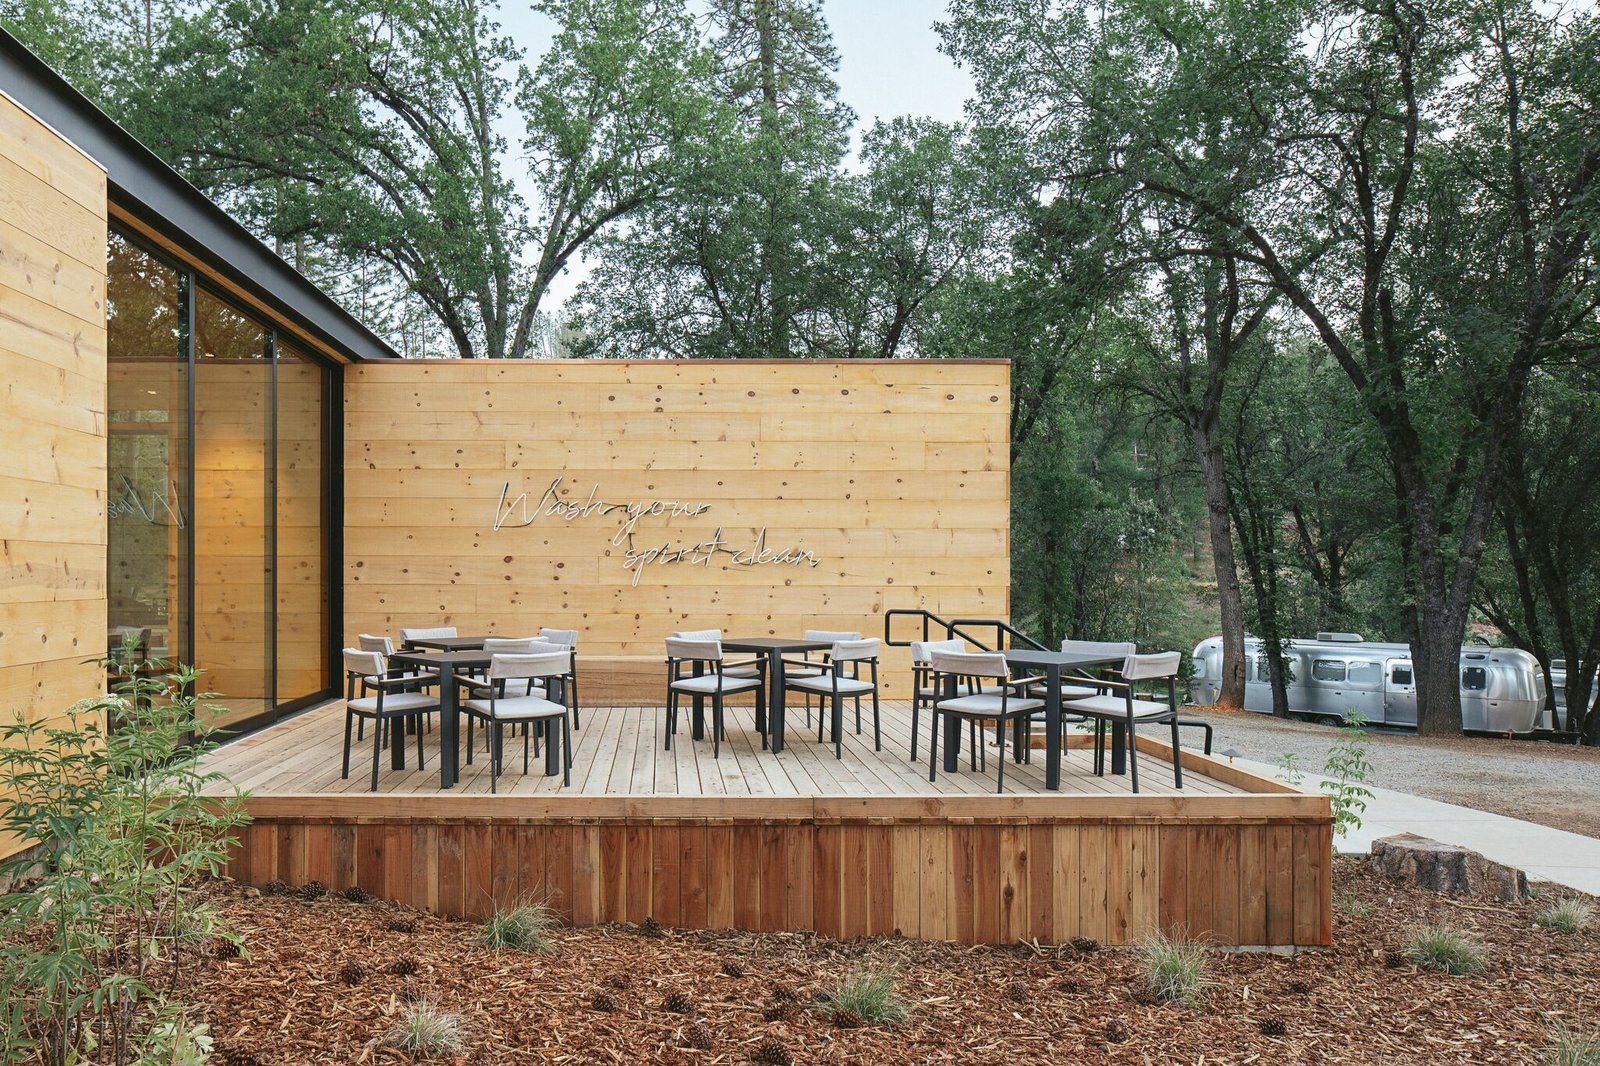 Outdoor, Wood Patio, Porch, Deck, Horizontal Fences, Wall, Shrubs, Wood Fences, Wall, Side Yard, and Trees The patio invites dining alfresco under a neon sign custom-created for AutoCamp.  Photos from AutoCamp's Epic New Location Brings Upscale Airstream Lodging to Yosemite National Park